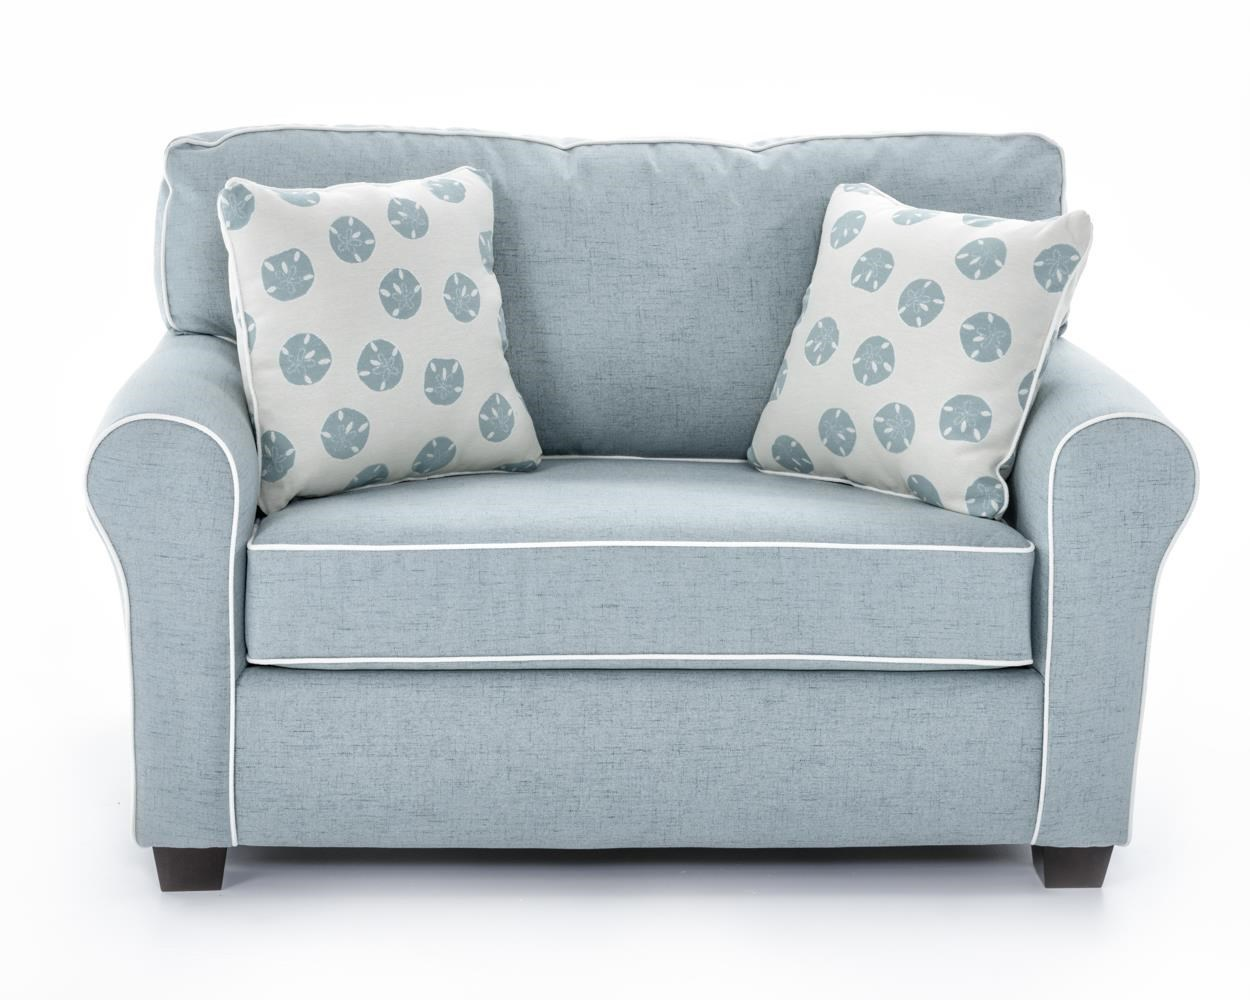 Sofa Sleeper Twin Zeth Crimson Queen Sofa Sleeper